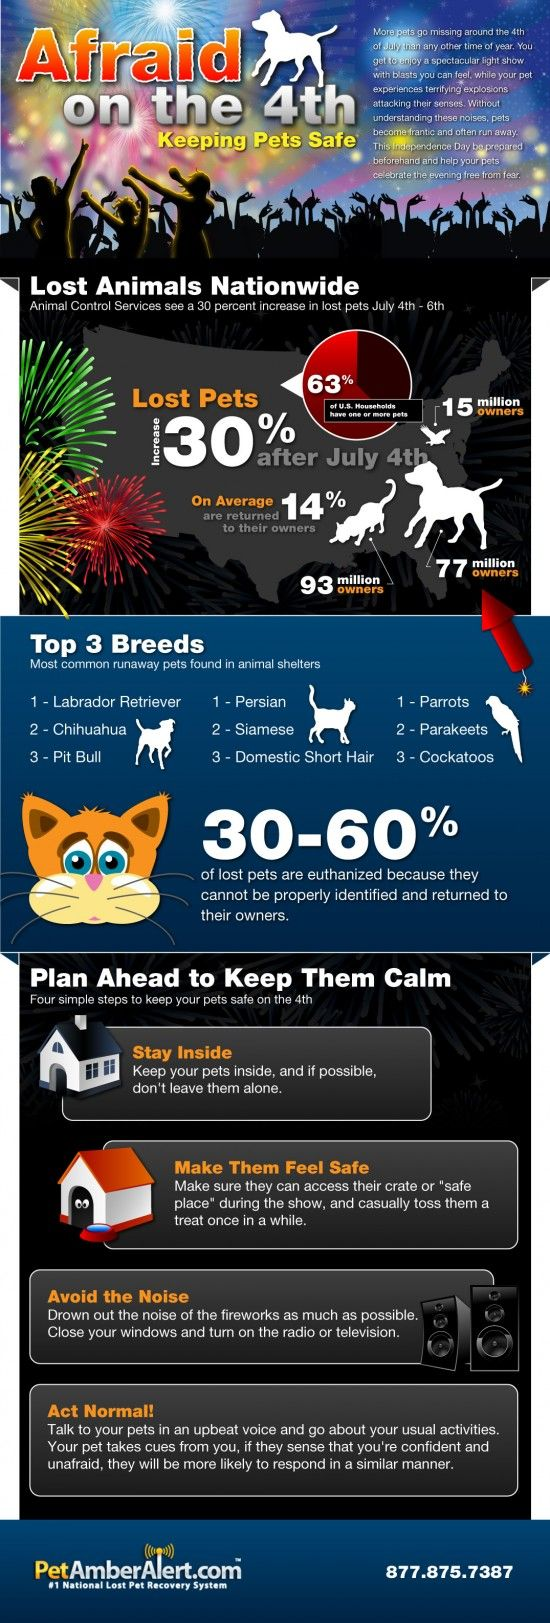 Keeping pets safe: One of our dogs ran away on Canada Day and was hit by a car. Keep them inside.